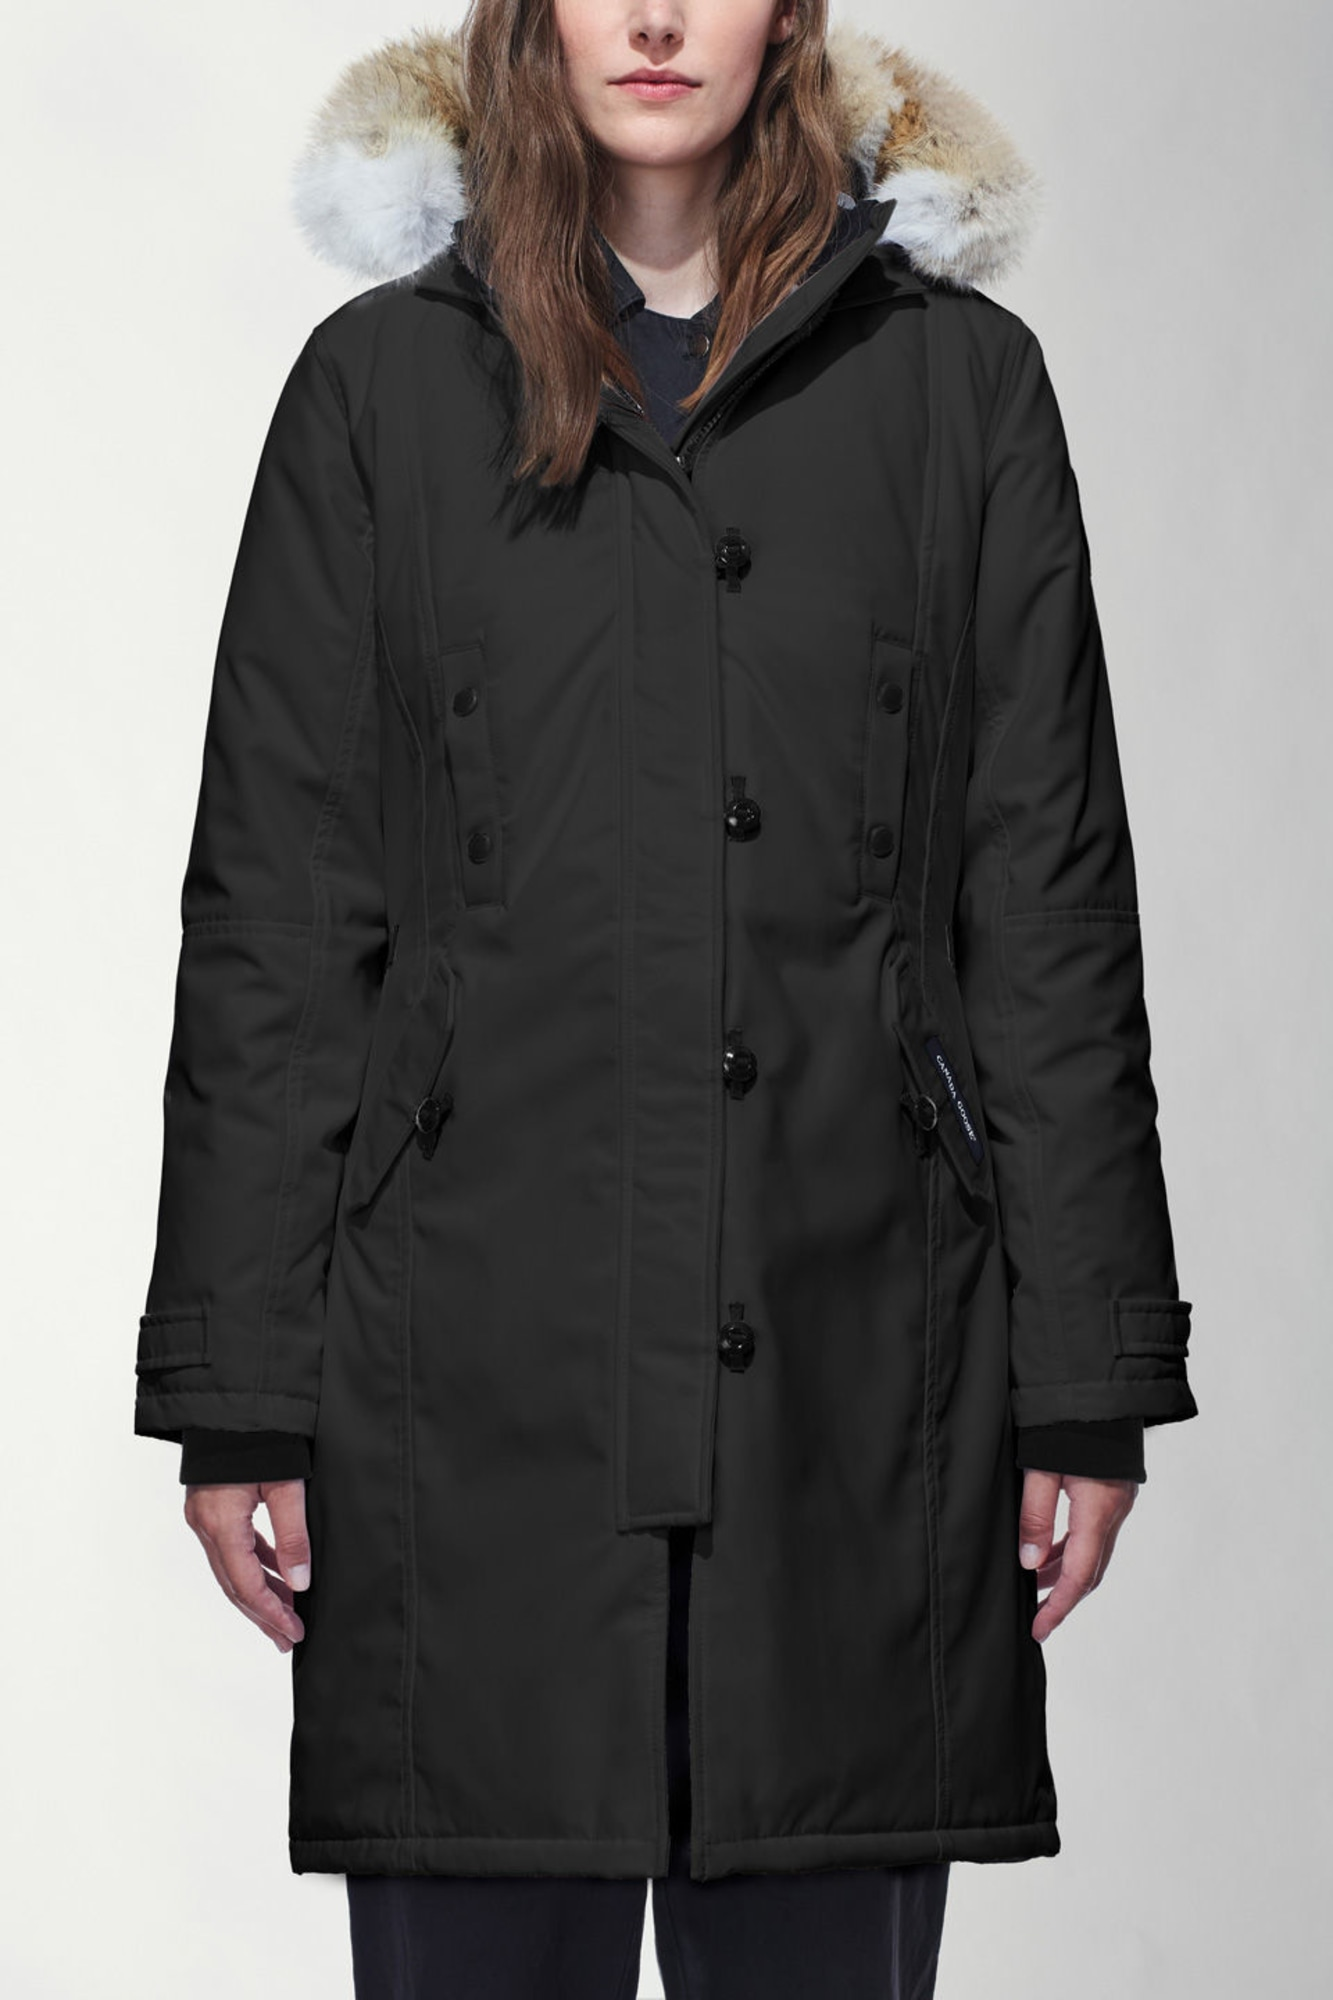 5be57309048 Kensington Parka